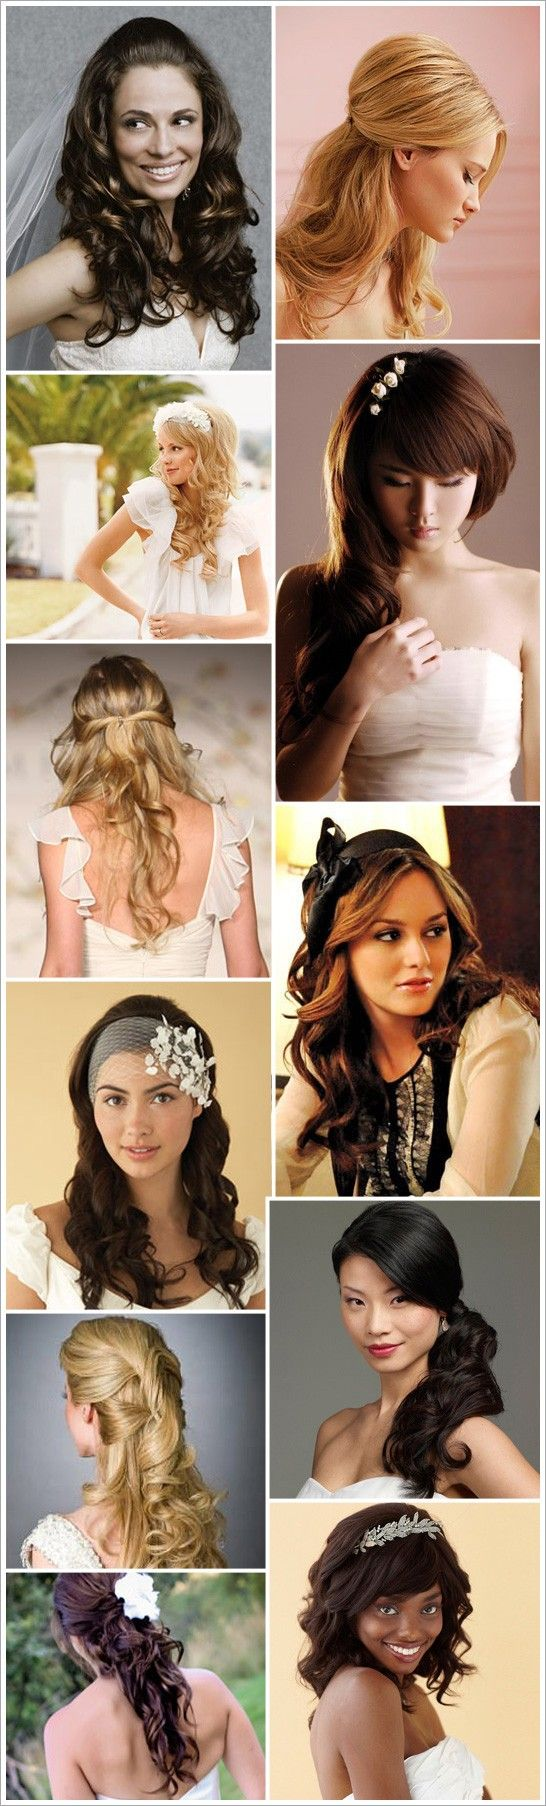 <3 Hairstyles.....